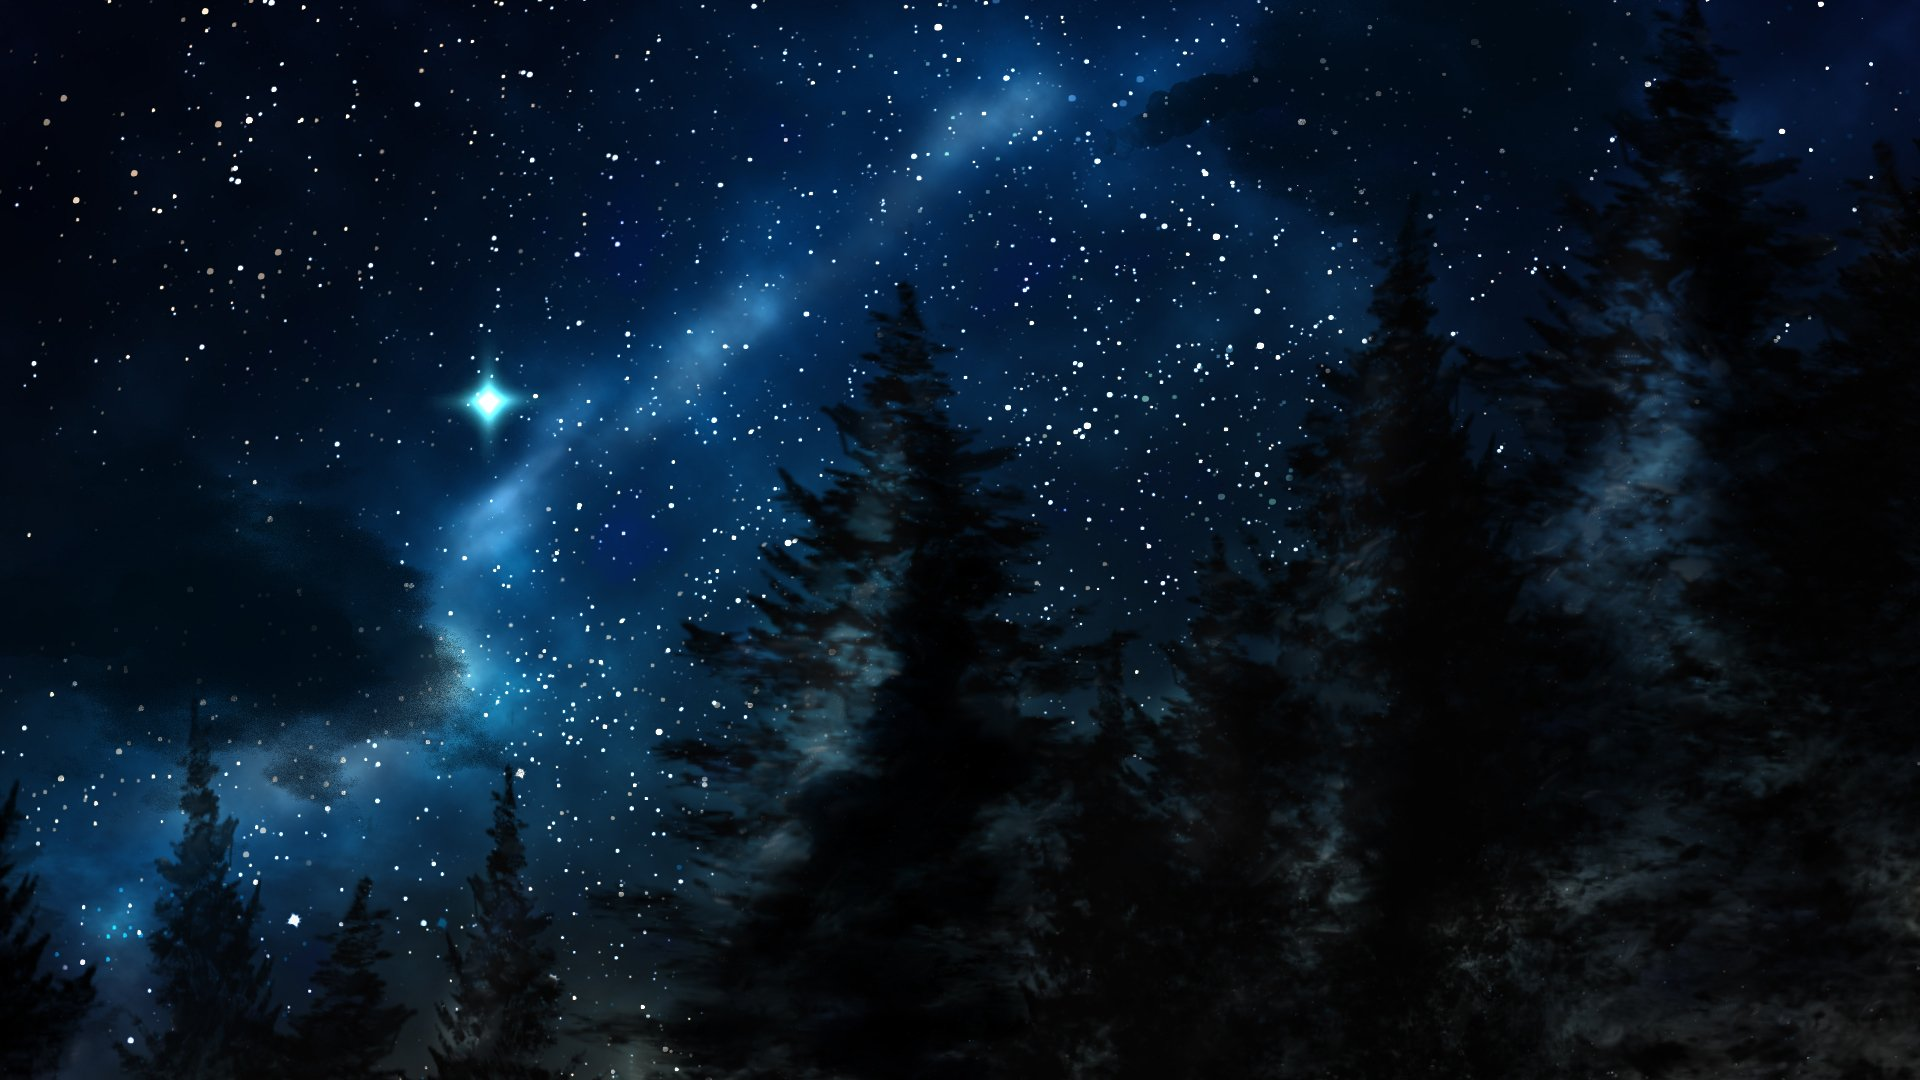 Winter Night Sky Wallpaper - WallpaperSafari